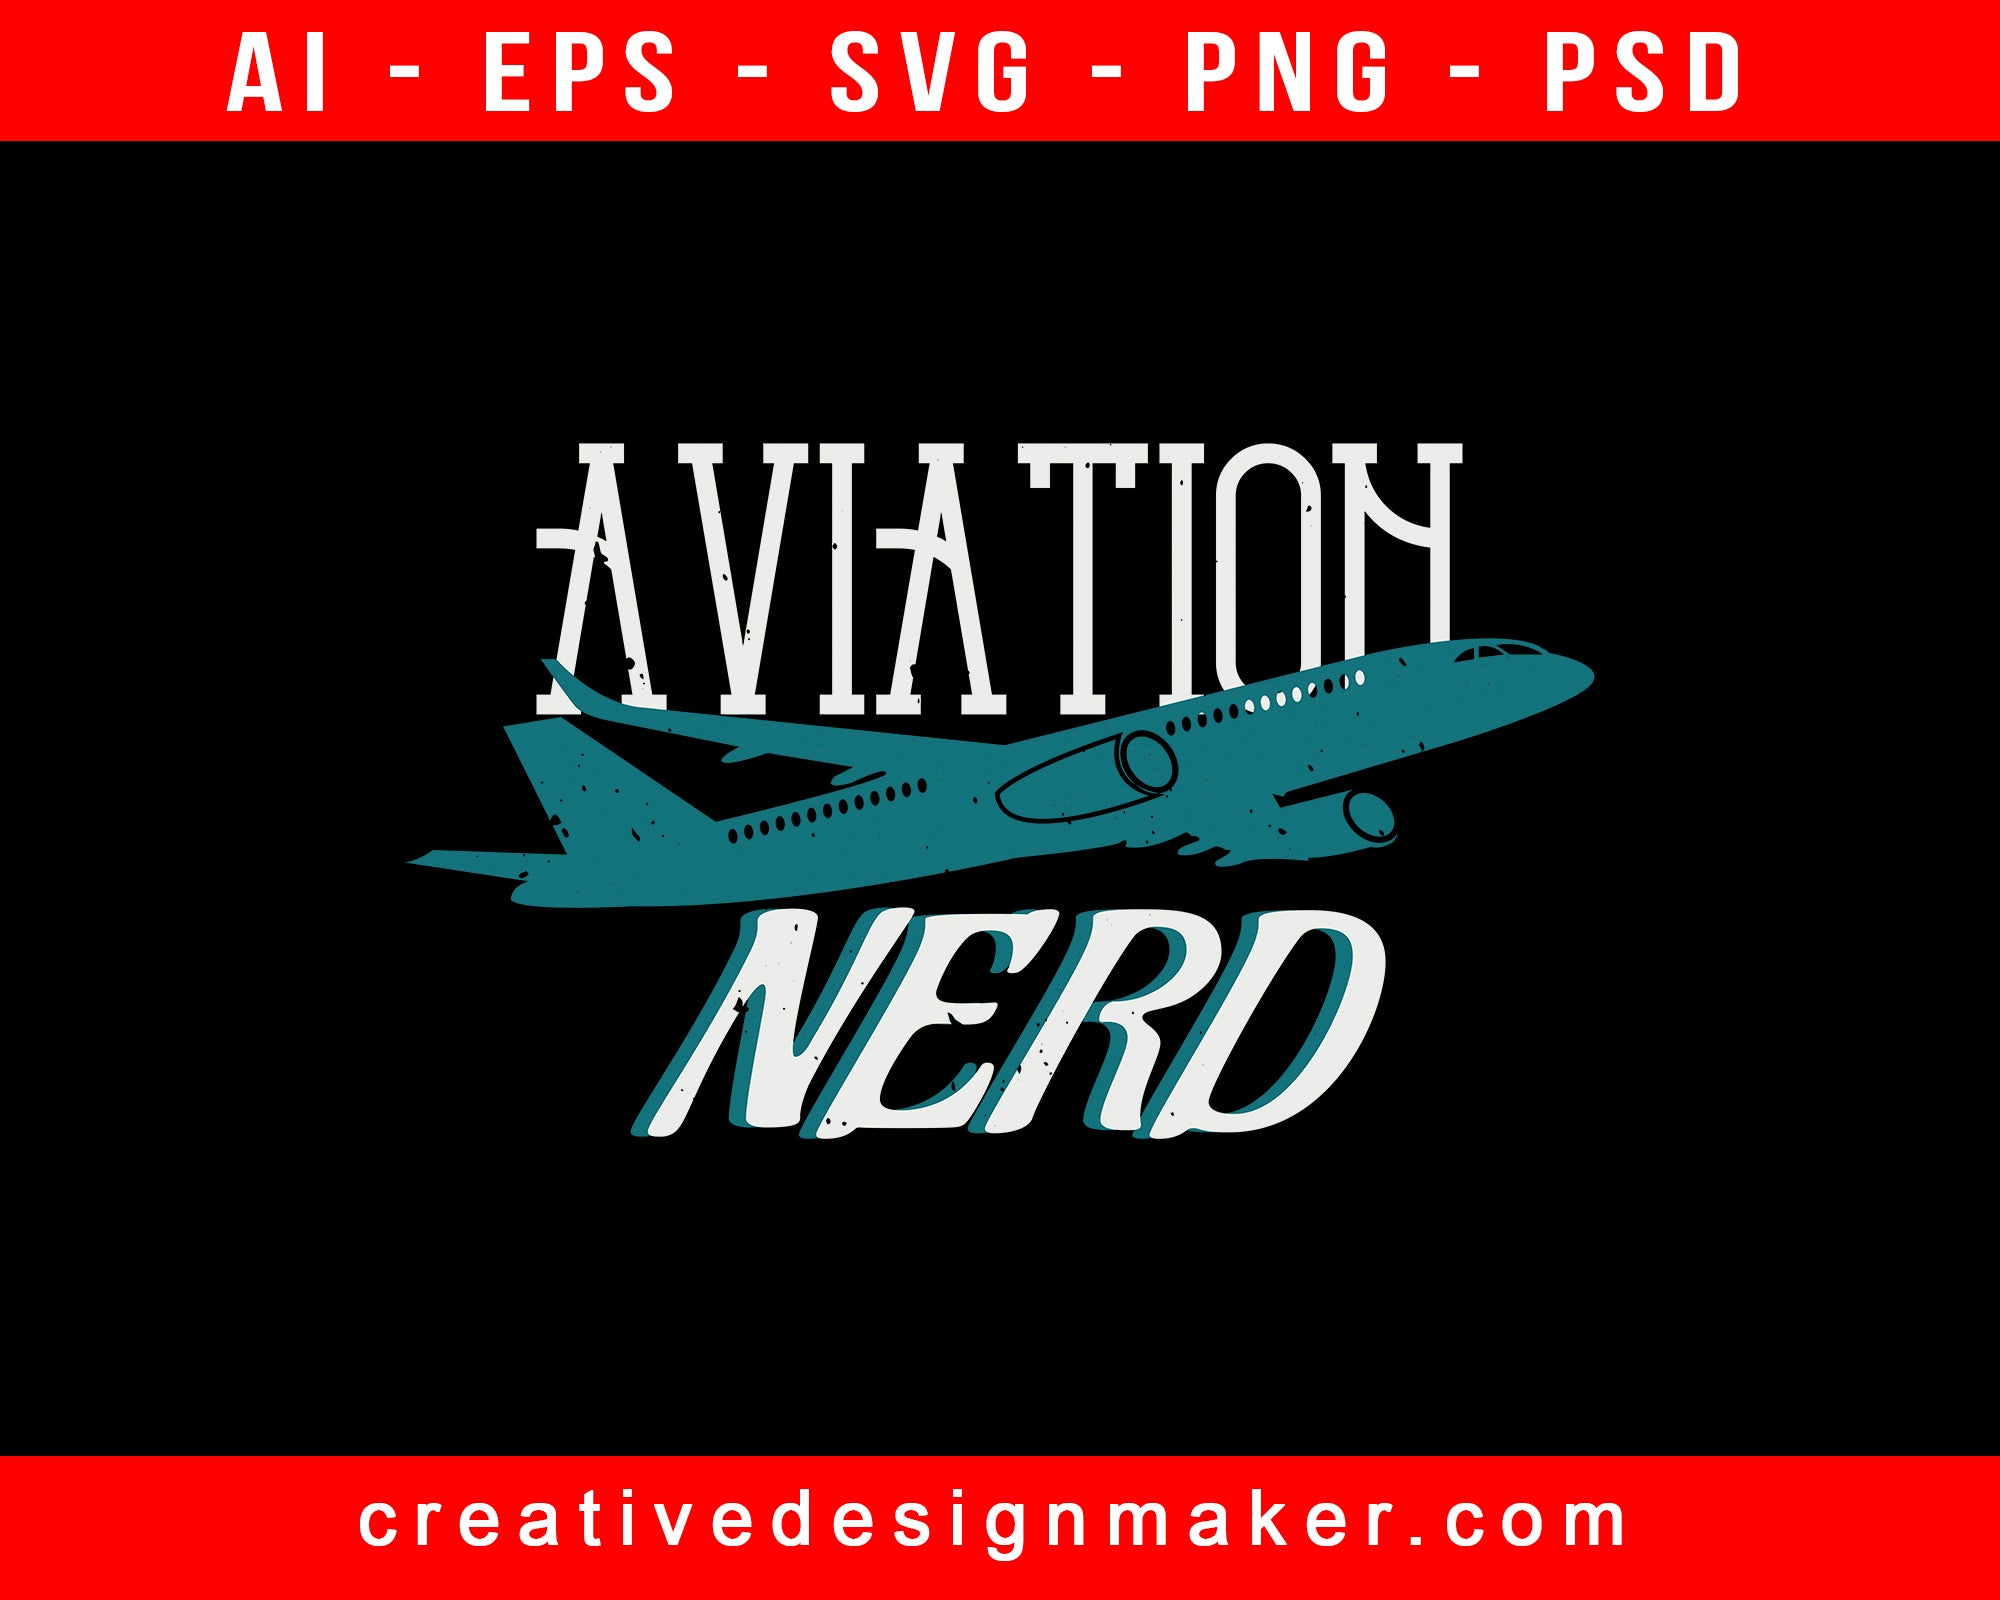 Aviation Nerd Print Ready Editable T-Shirt SVG Design!